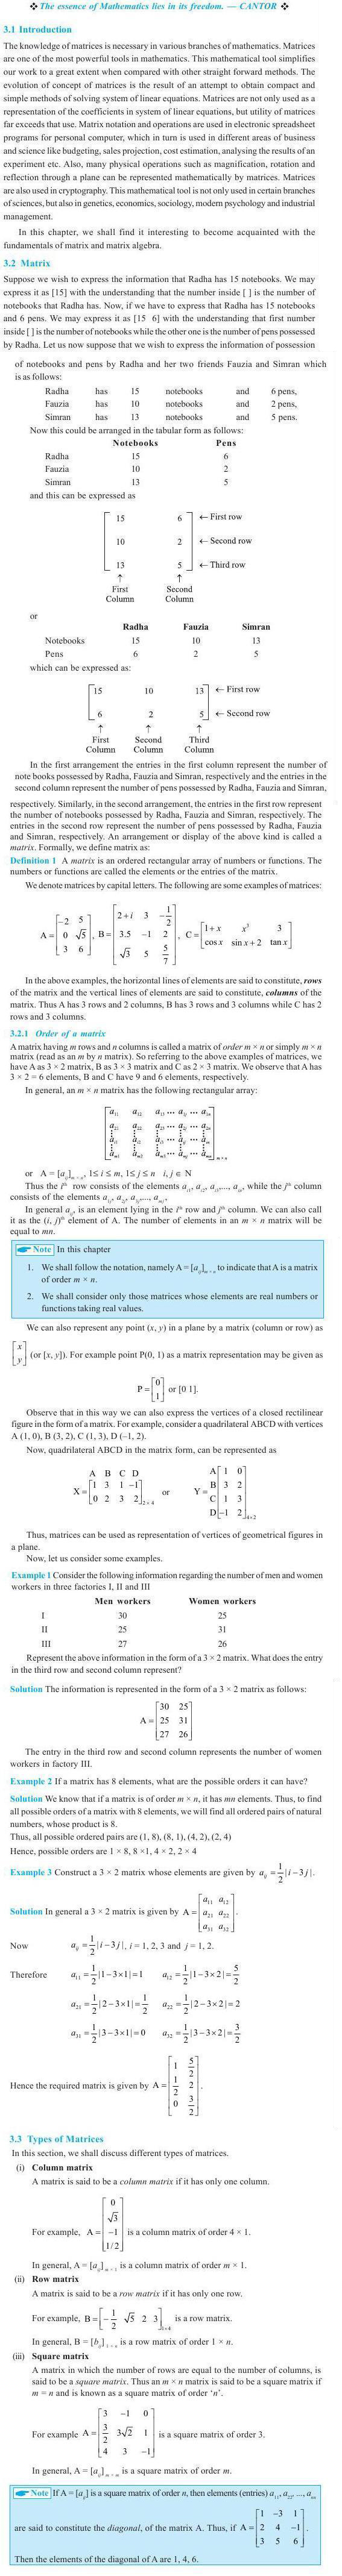 NCERT Class XII Maths Chapter 3 - Matrices